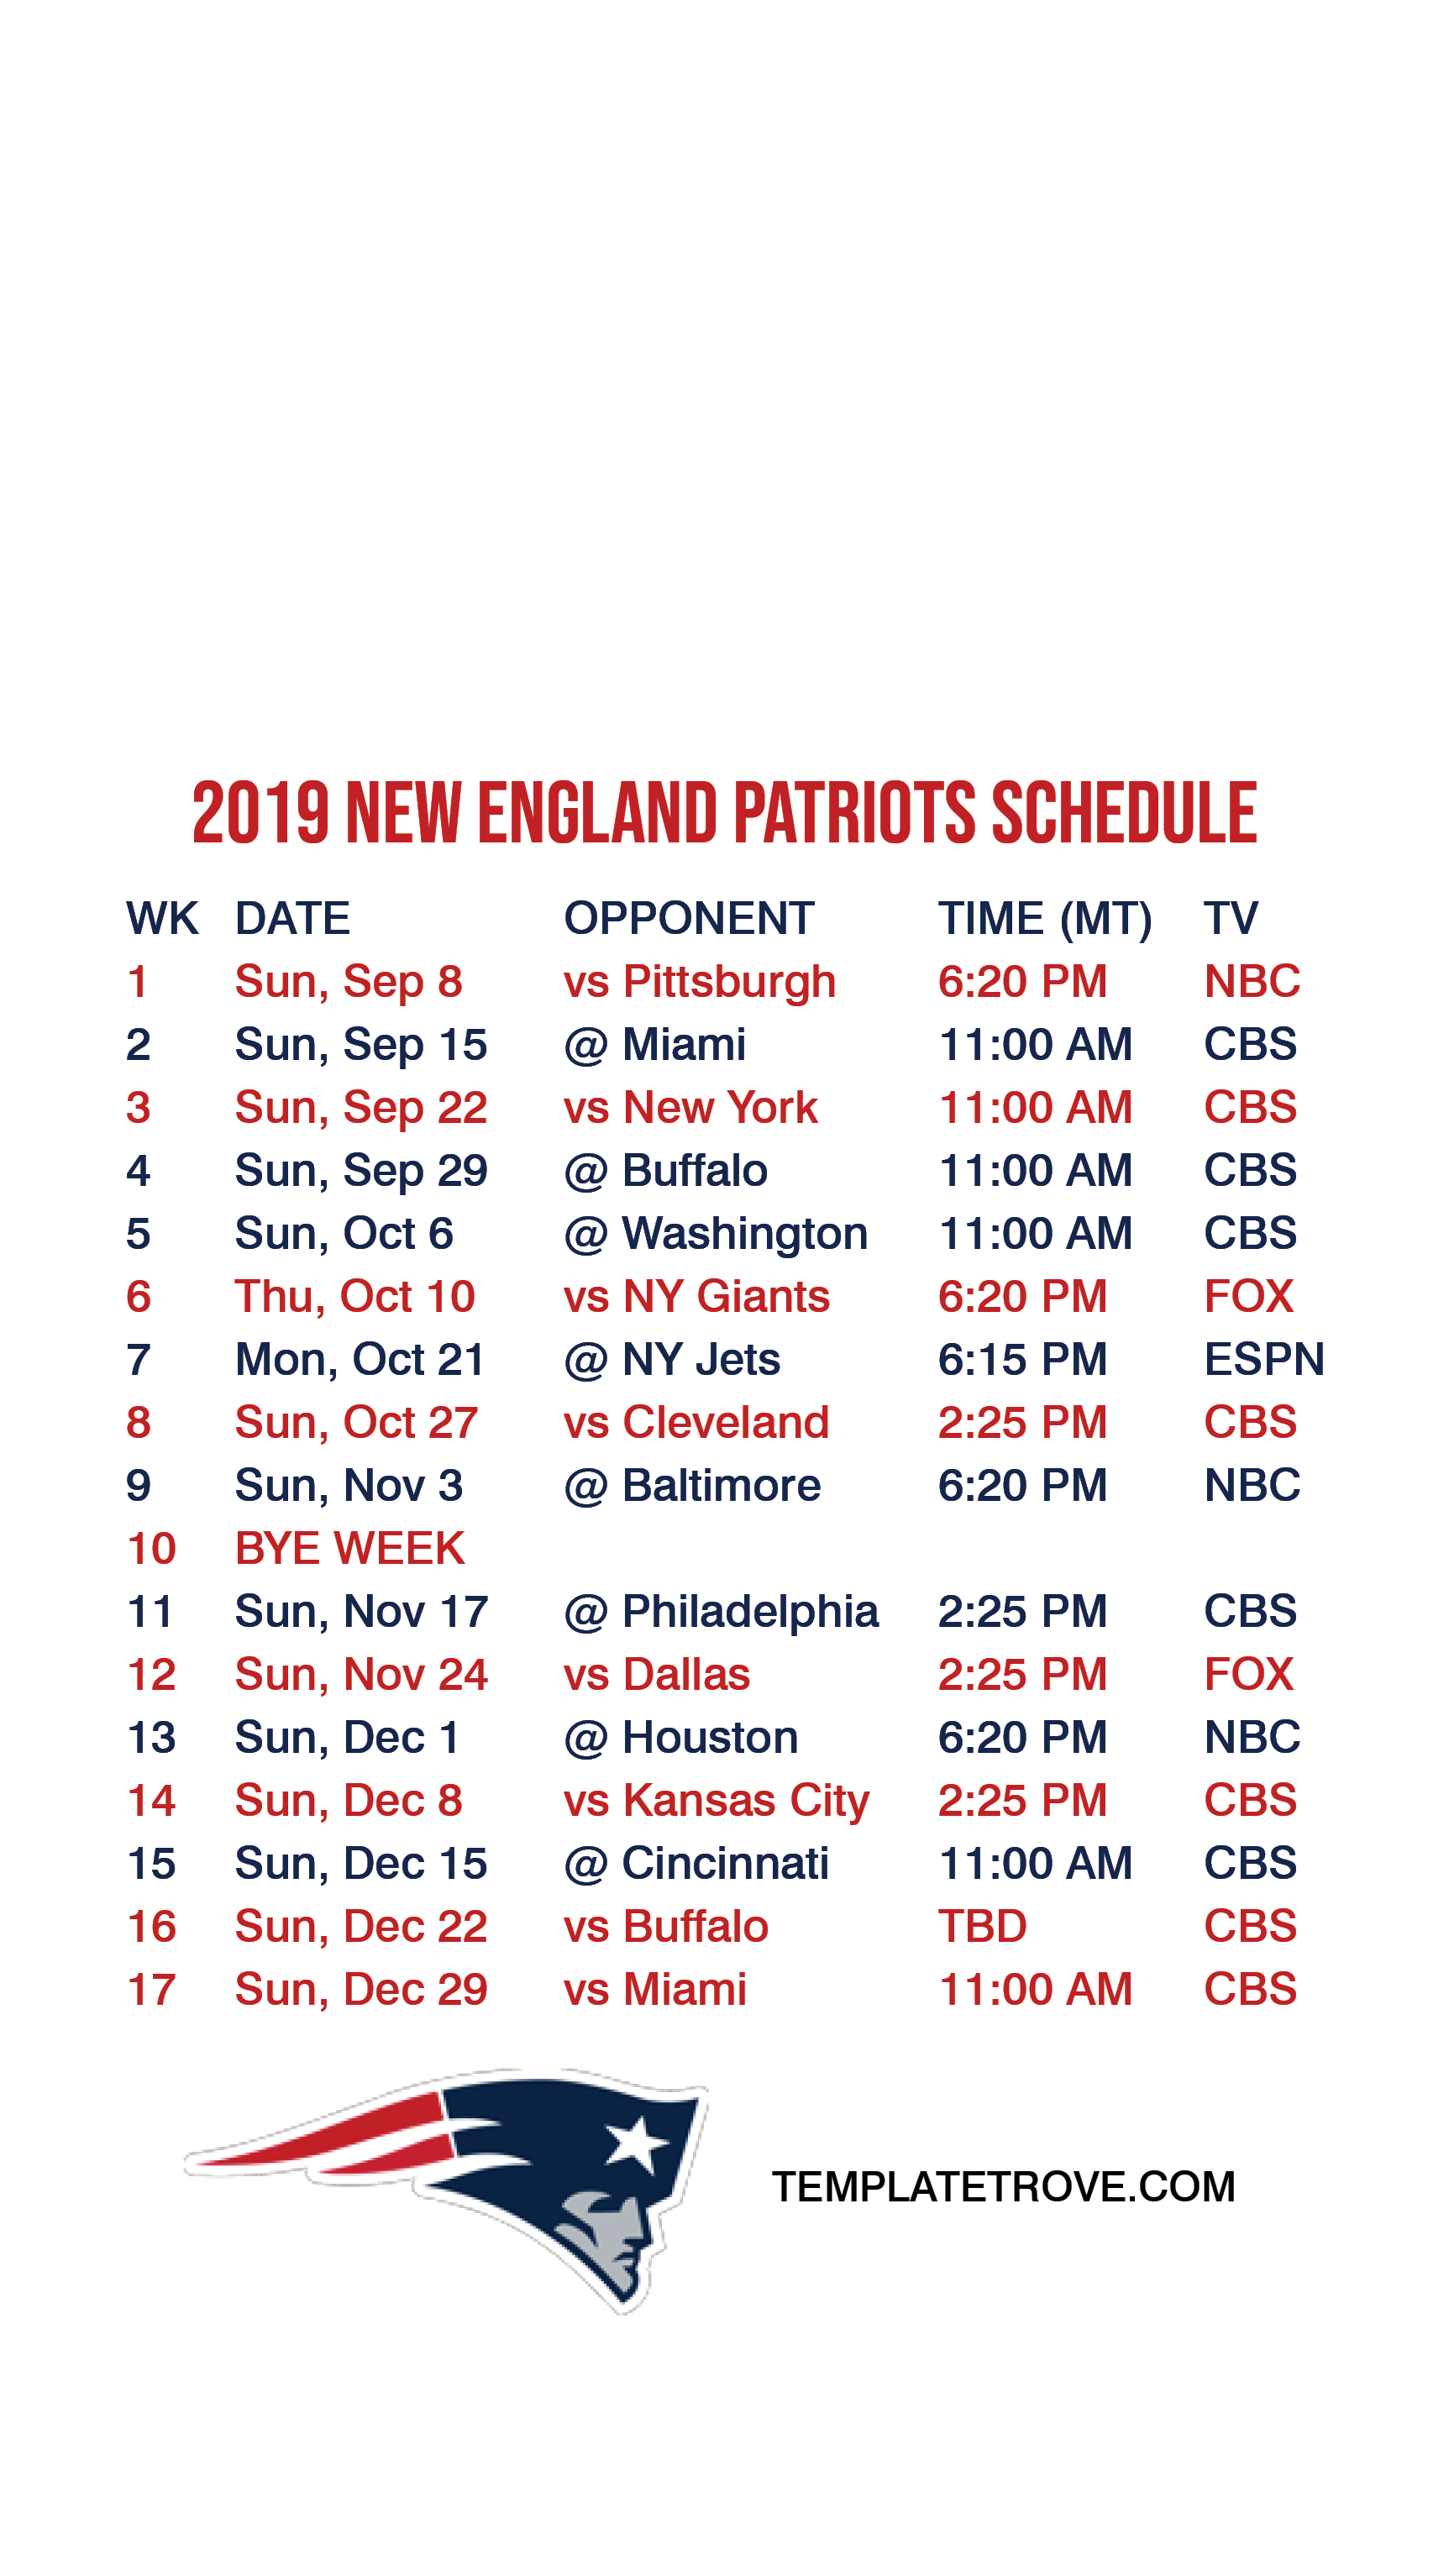 graphic regarding New England Patriots Printable Schedule called 2019-2020 Fresh England Patriots Lock Exhibit Routine for